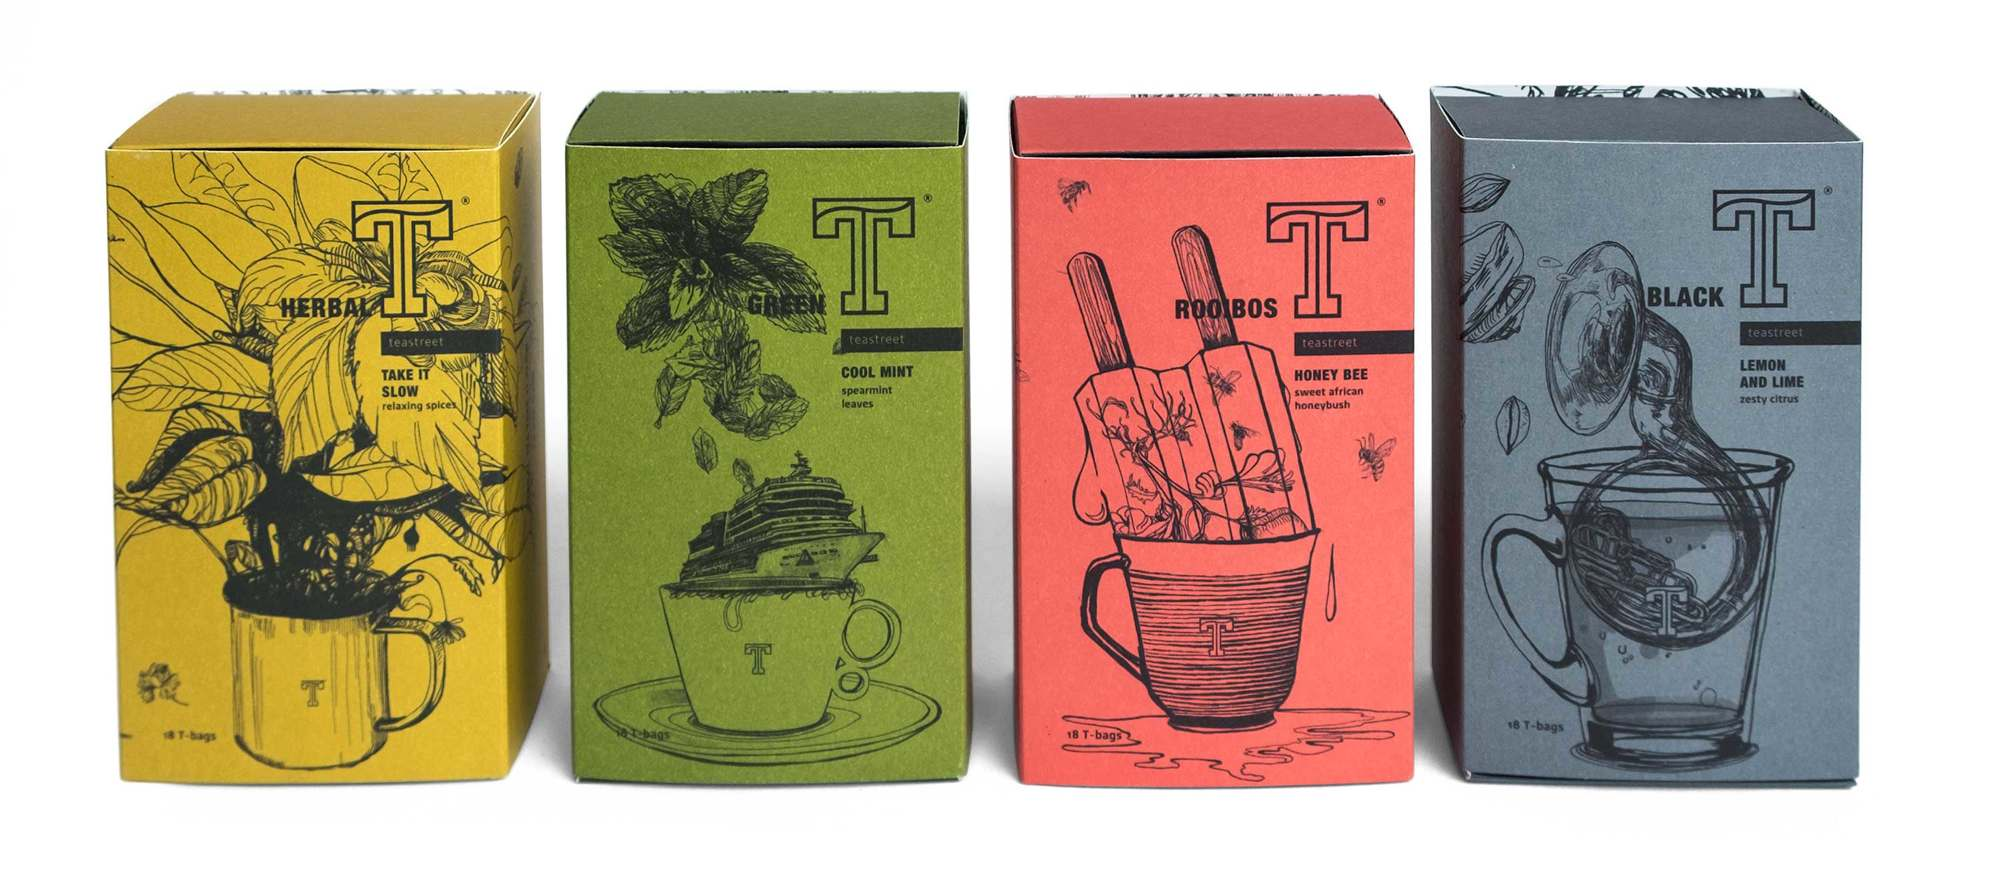 fig. 6. Additional packaging in color (graphic design and phot: alt-8.com)